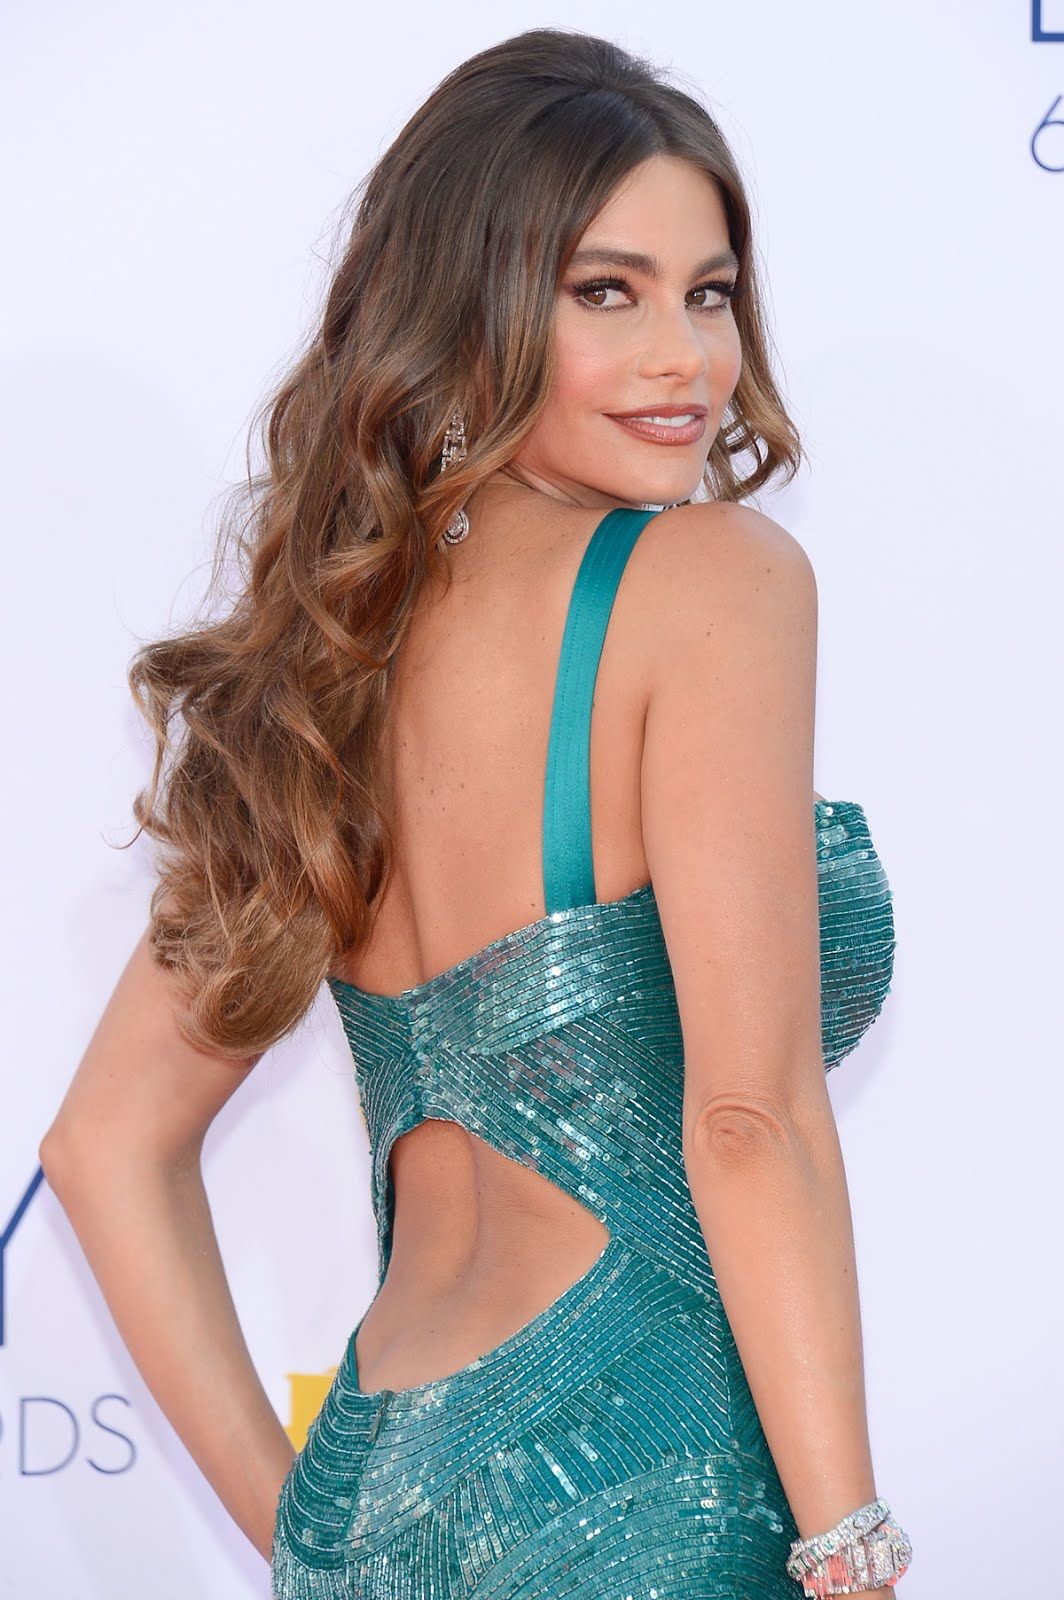 http://4.bp.blogspot.com/-qscGq5K6OfA/UGCCwmFbVEI/AAAAAAAABlM/zn541D9PFkg/s1600/SOFIA-VERGARA-at-64th-Primetime-Emmy-Awards-in-Los-Angeles-1.jpg